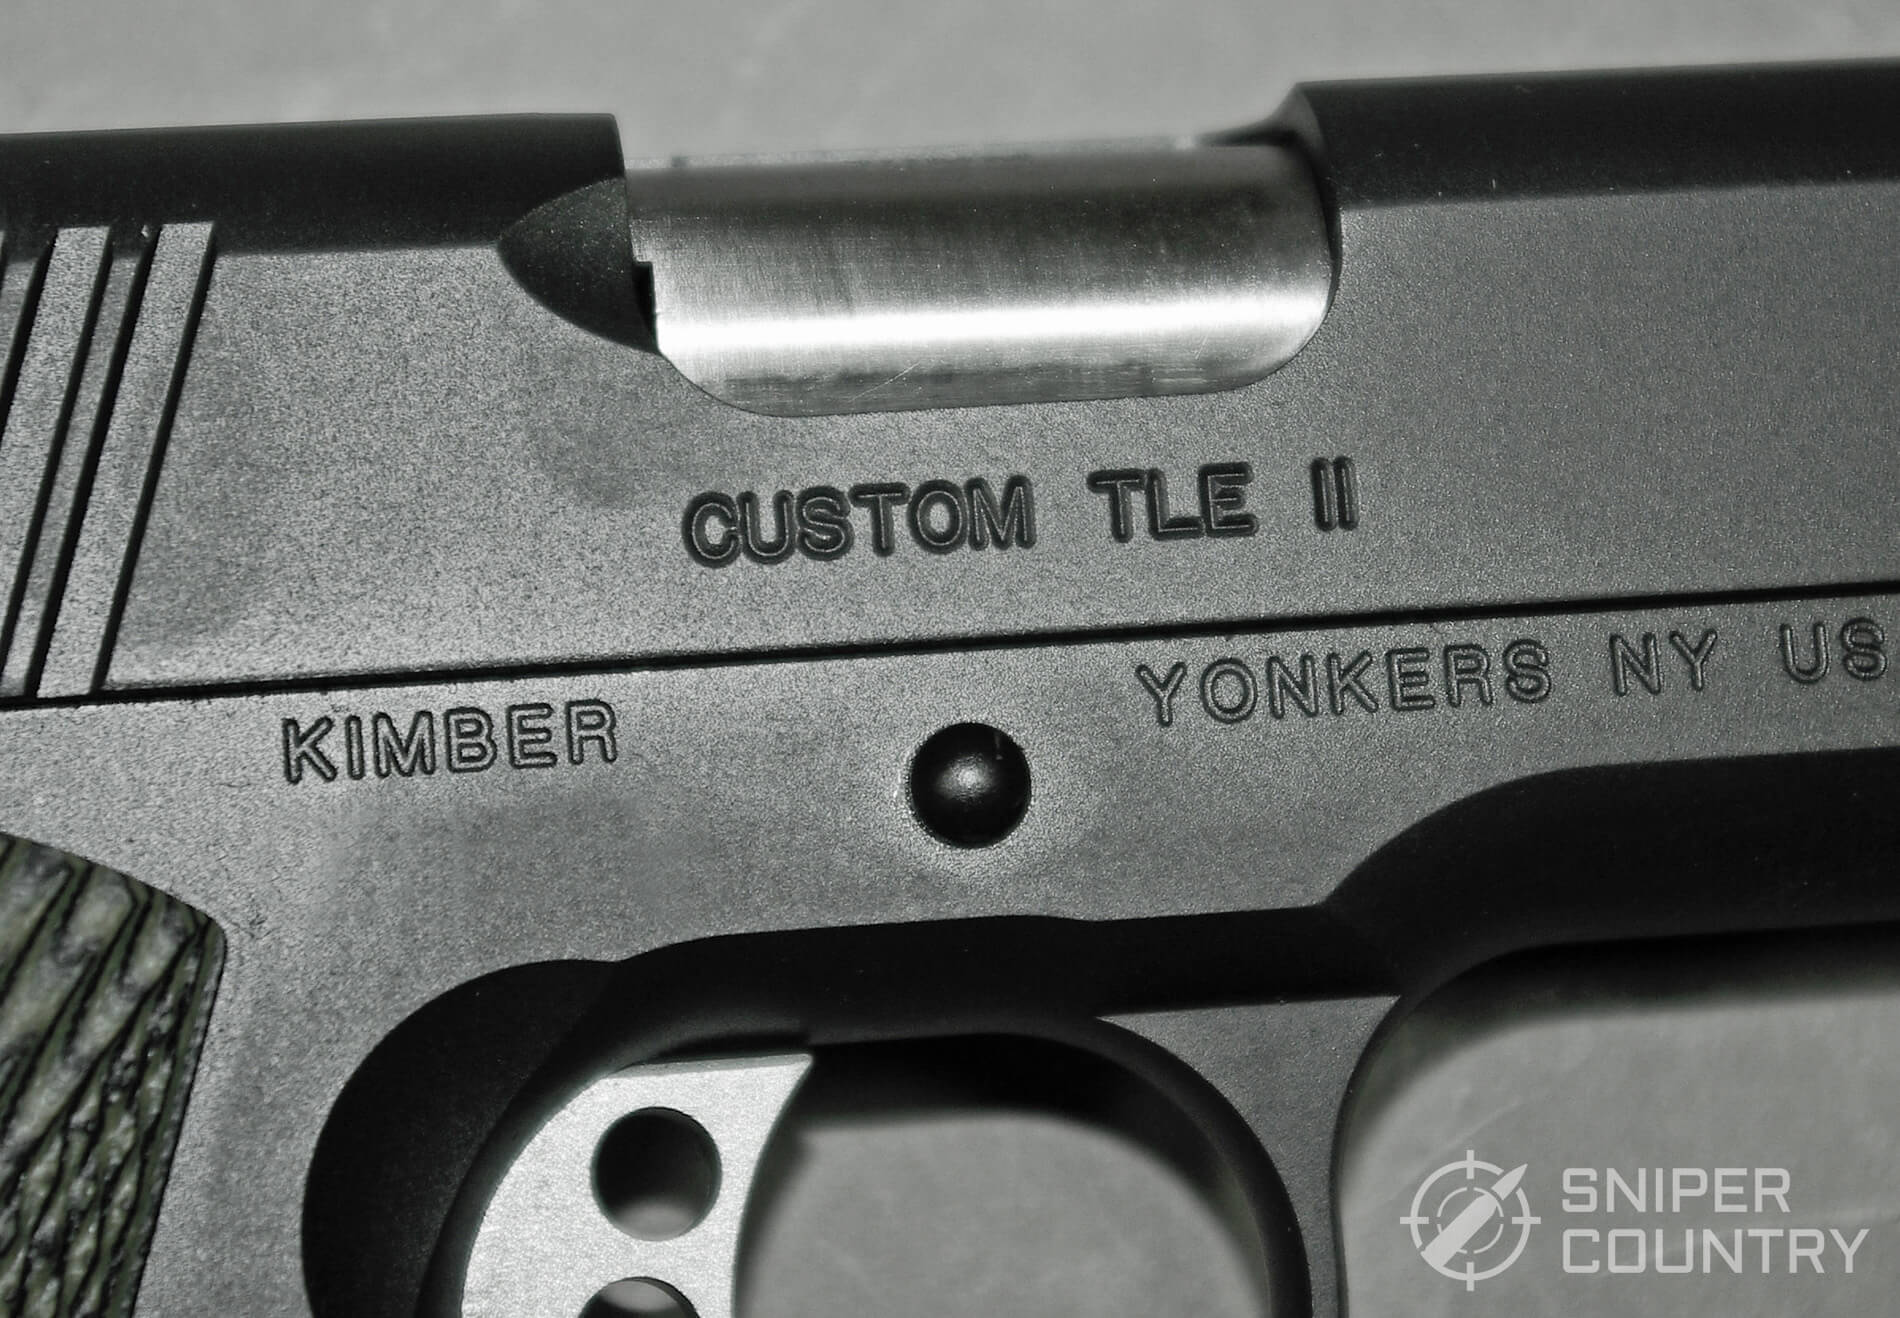 Kimber 1911 TLE II 10mm Trigger and Logo